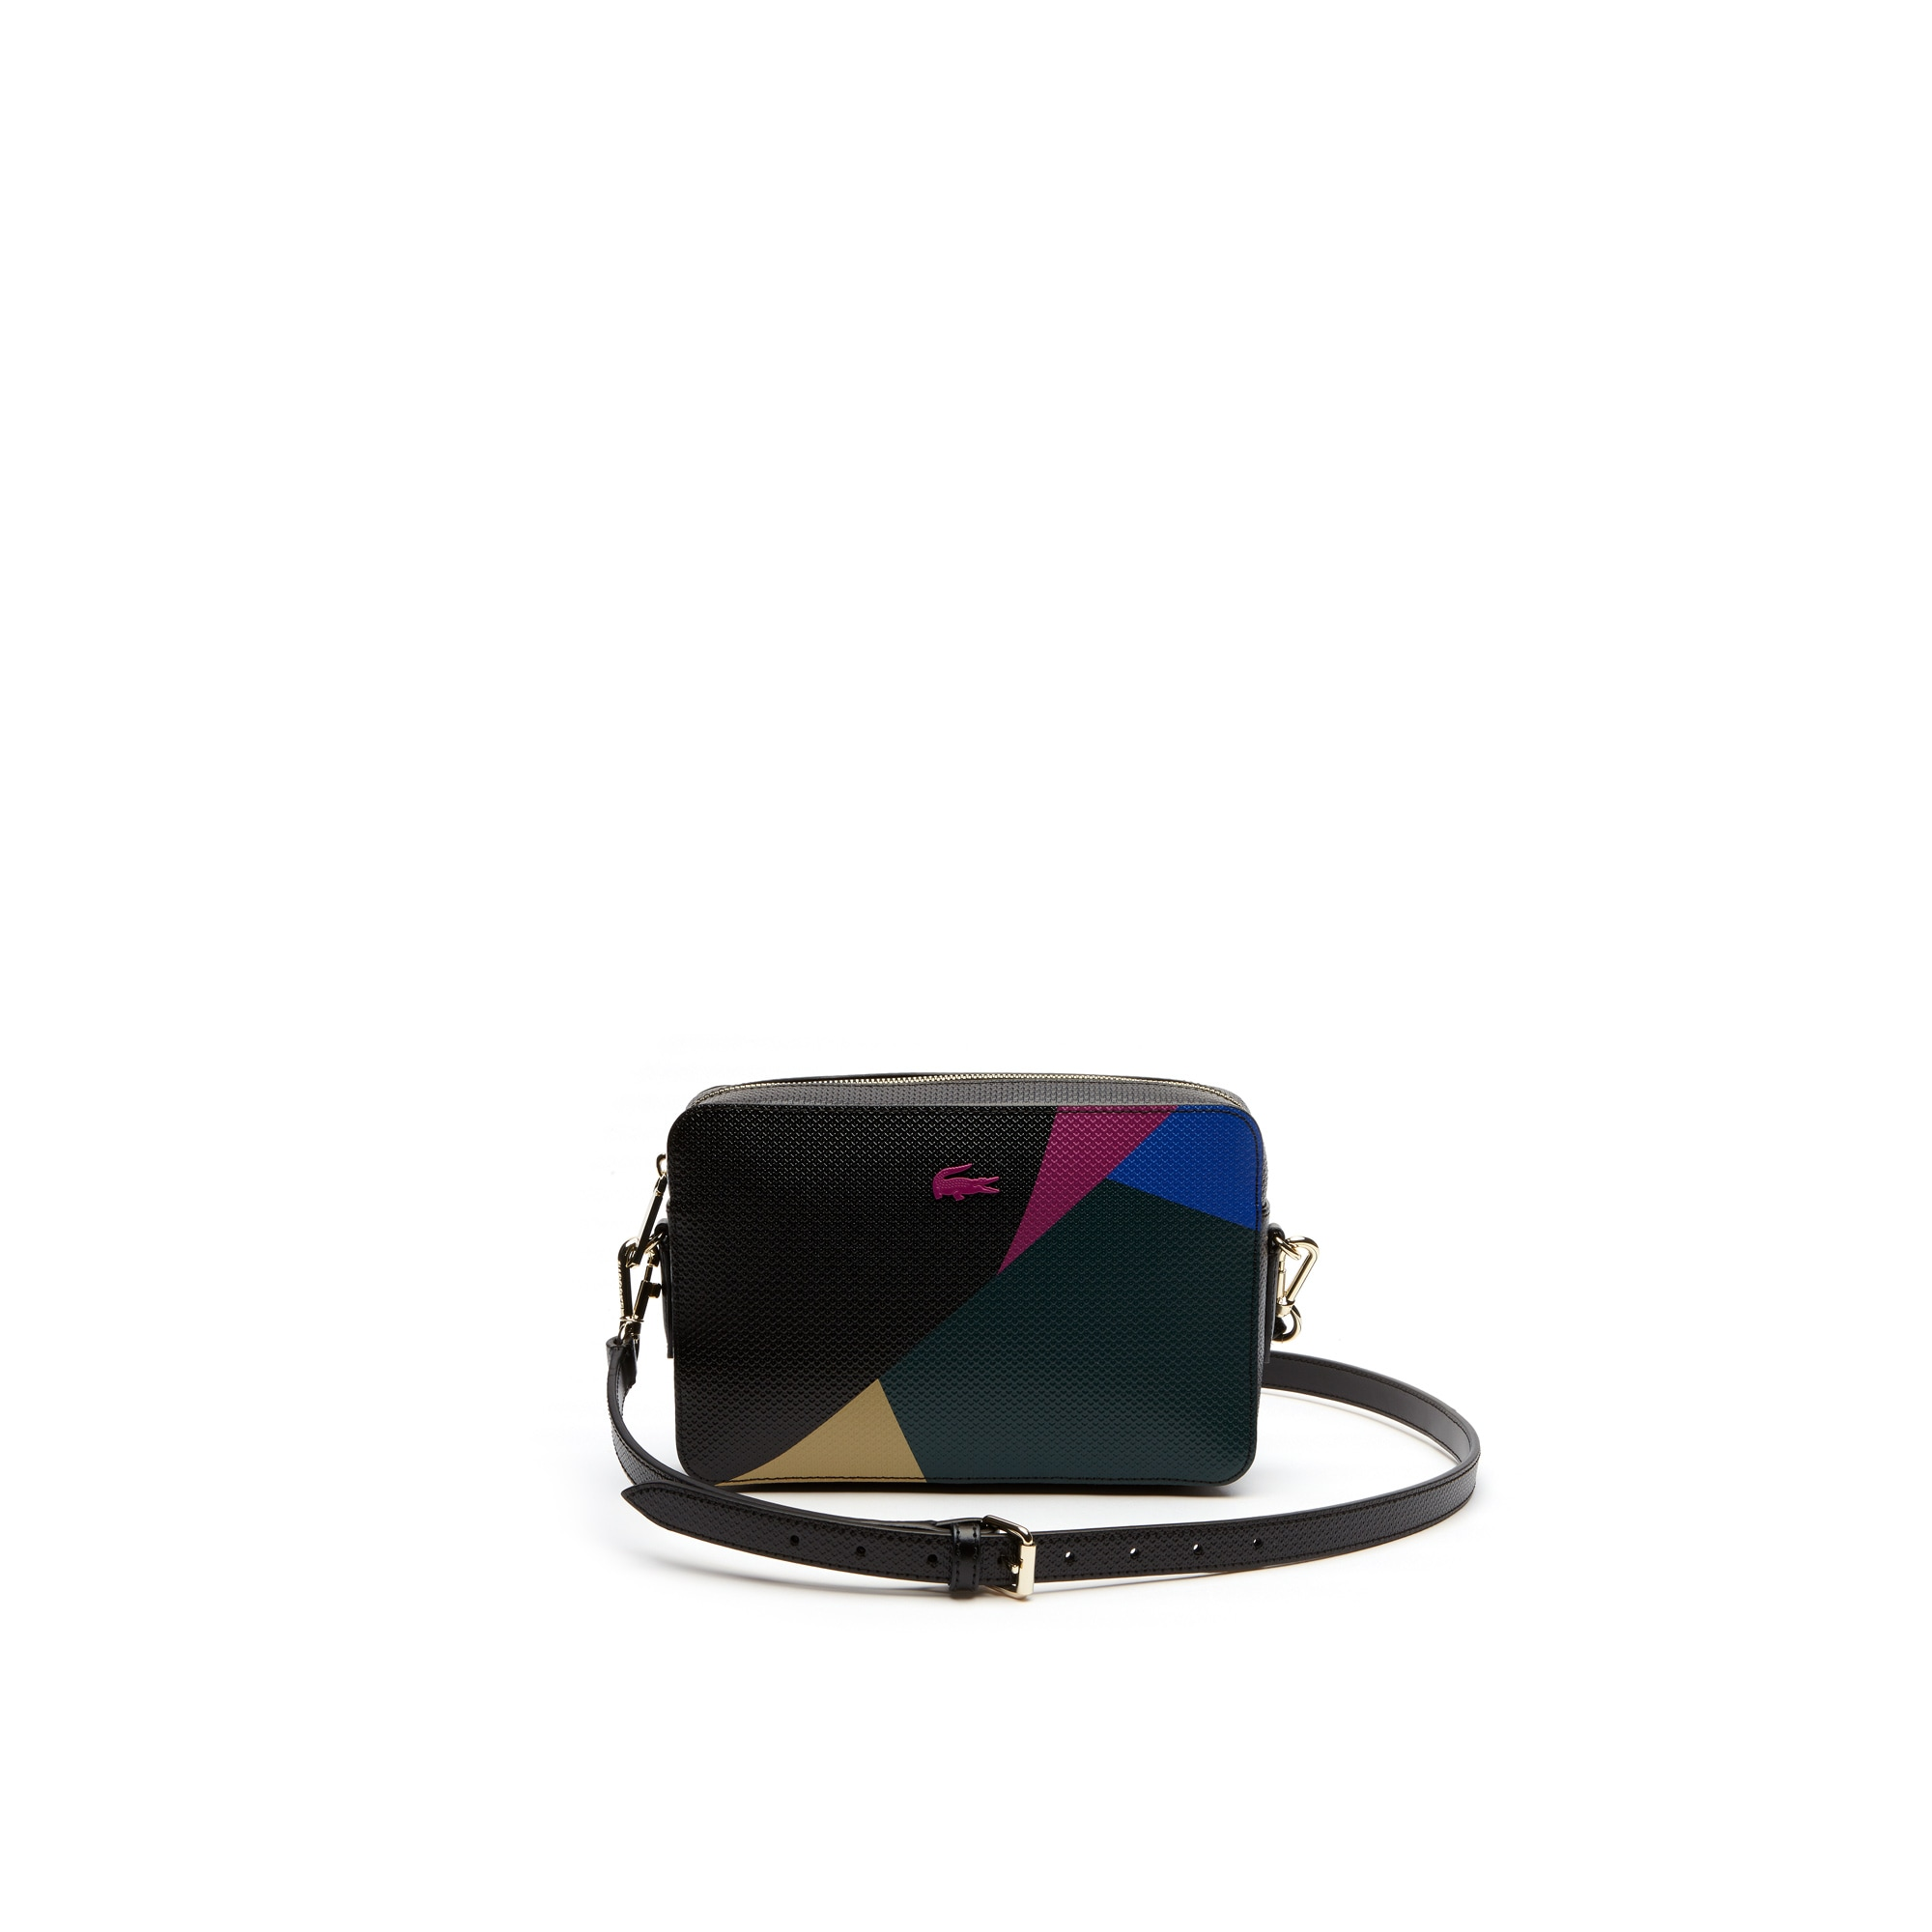 Damen CHANTACO Tasche mit Colorblocks